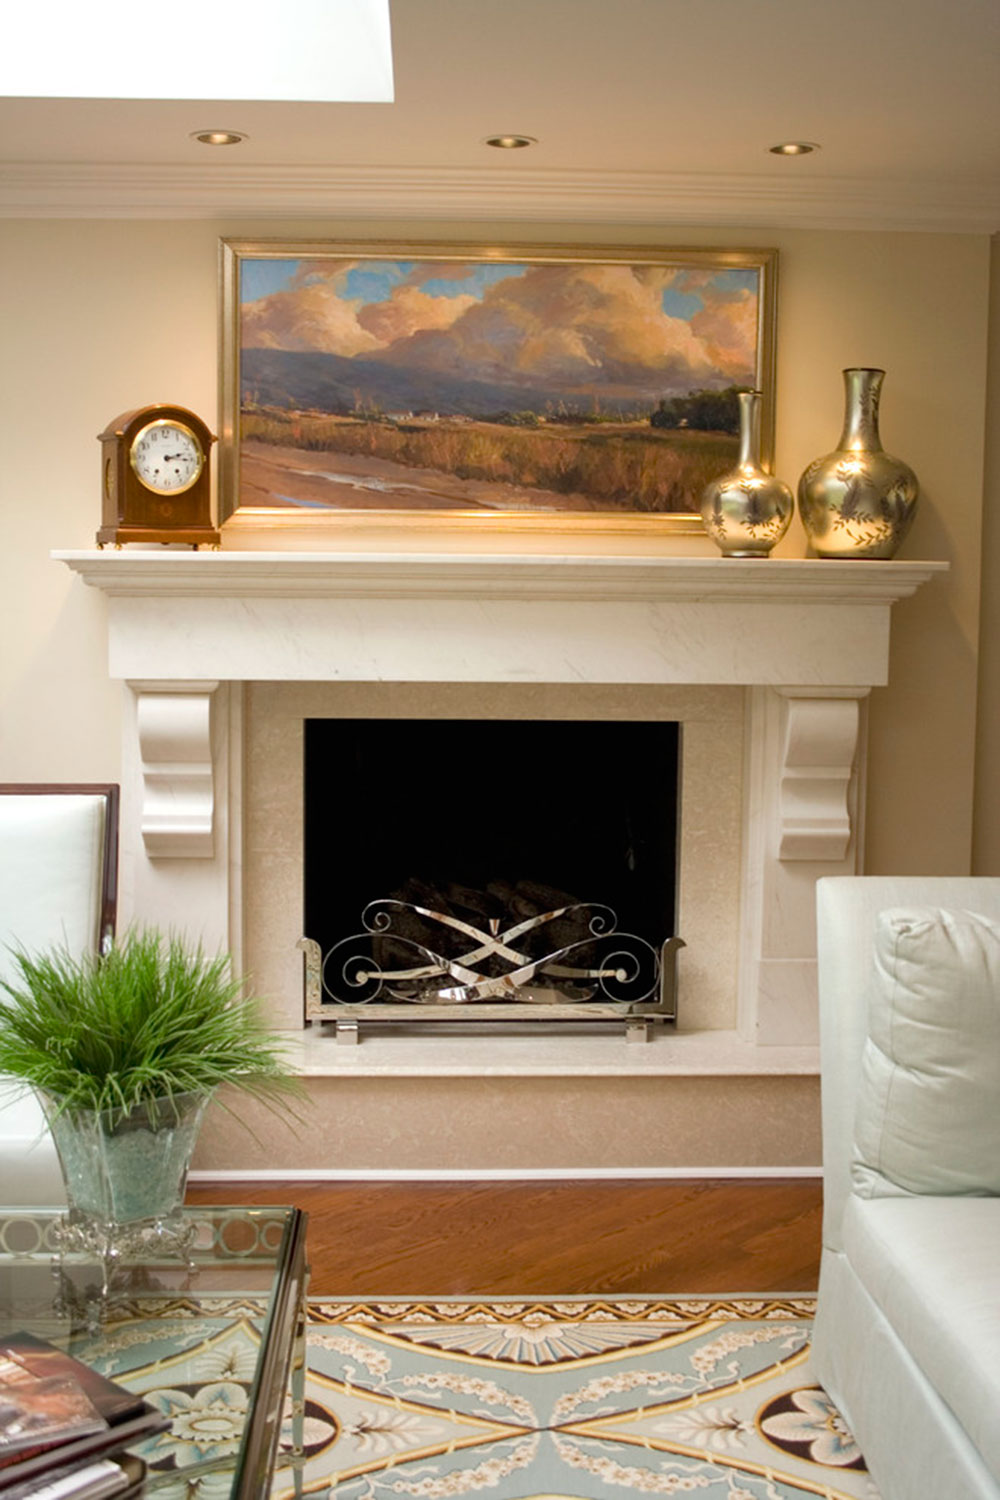 Fireplace covering-decoration-ideas-for-a-cozy-home2 fireplace covering-decoration ideas for a cozy home